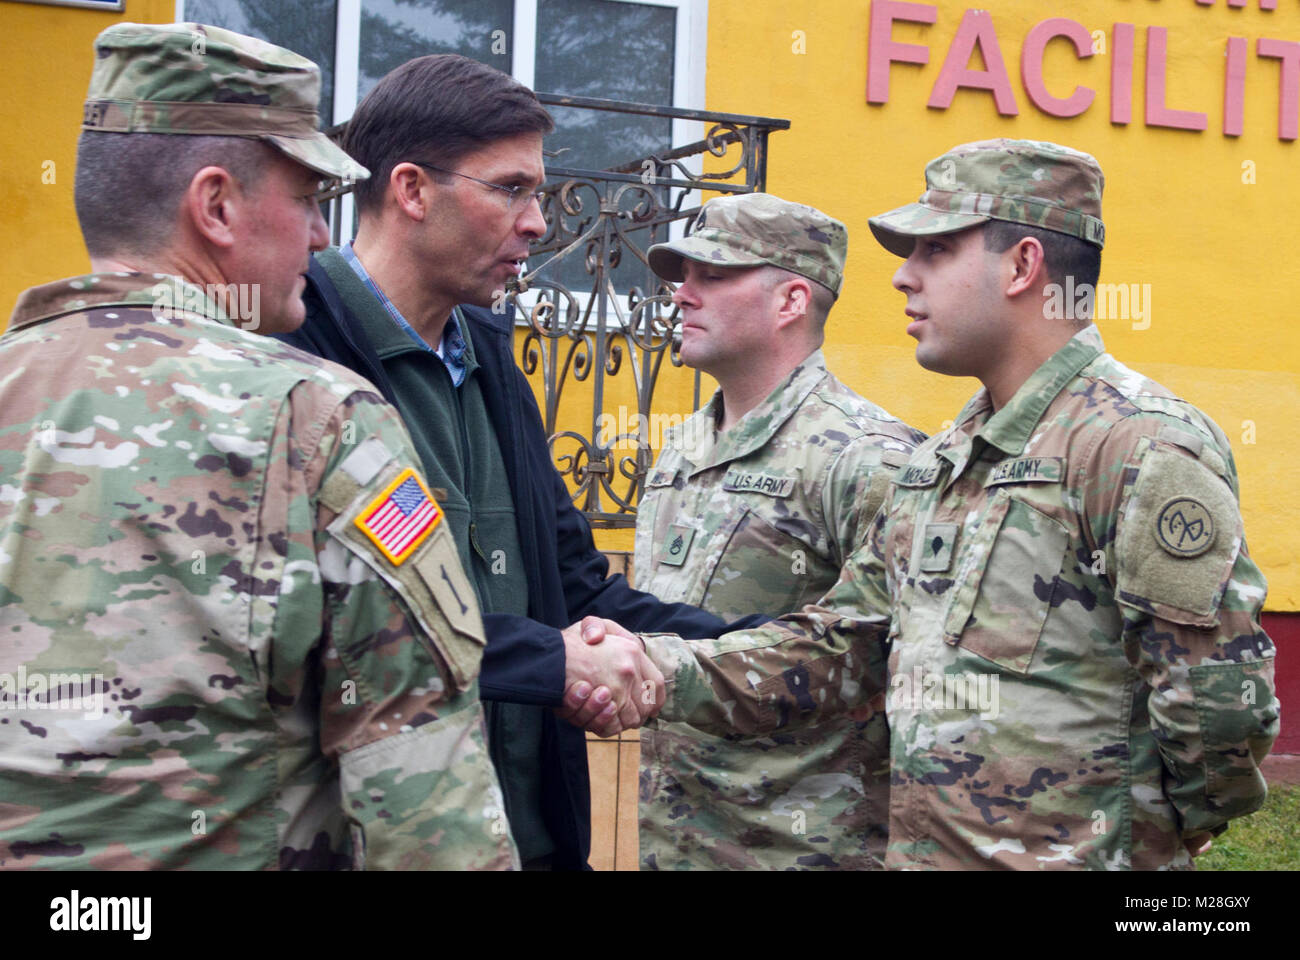 Yavoriv, Ukraine – Mark T. Esper, the United States Secretary of the Army presents a challenge coin to Spc. Kevin Morales, a motor transport operator assigned to the Joint Multinational Training Group – Ukraine during a visit to the Yavoriv Combat Training Center here Feb. 2. Currently more than 220 Soldiers from New York's 27th Infantry Brigade Combat Team are deployed to Ukraine where they are working hand-in-hand with the Ukrainian Army as they strive toward obtaining its goal of NATO interoperability. (U.S. Army Stock Photo